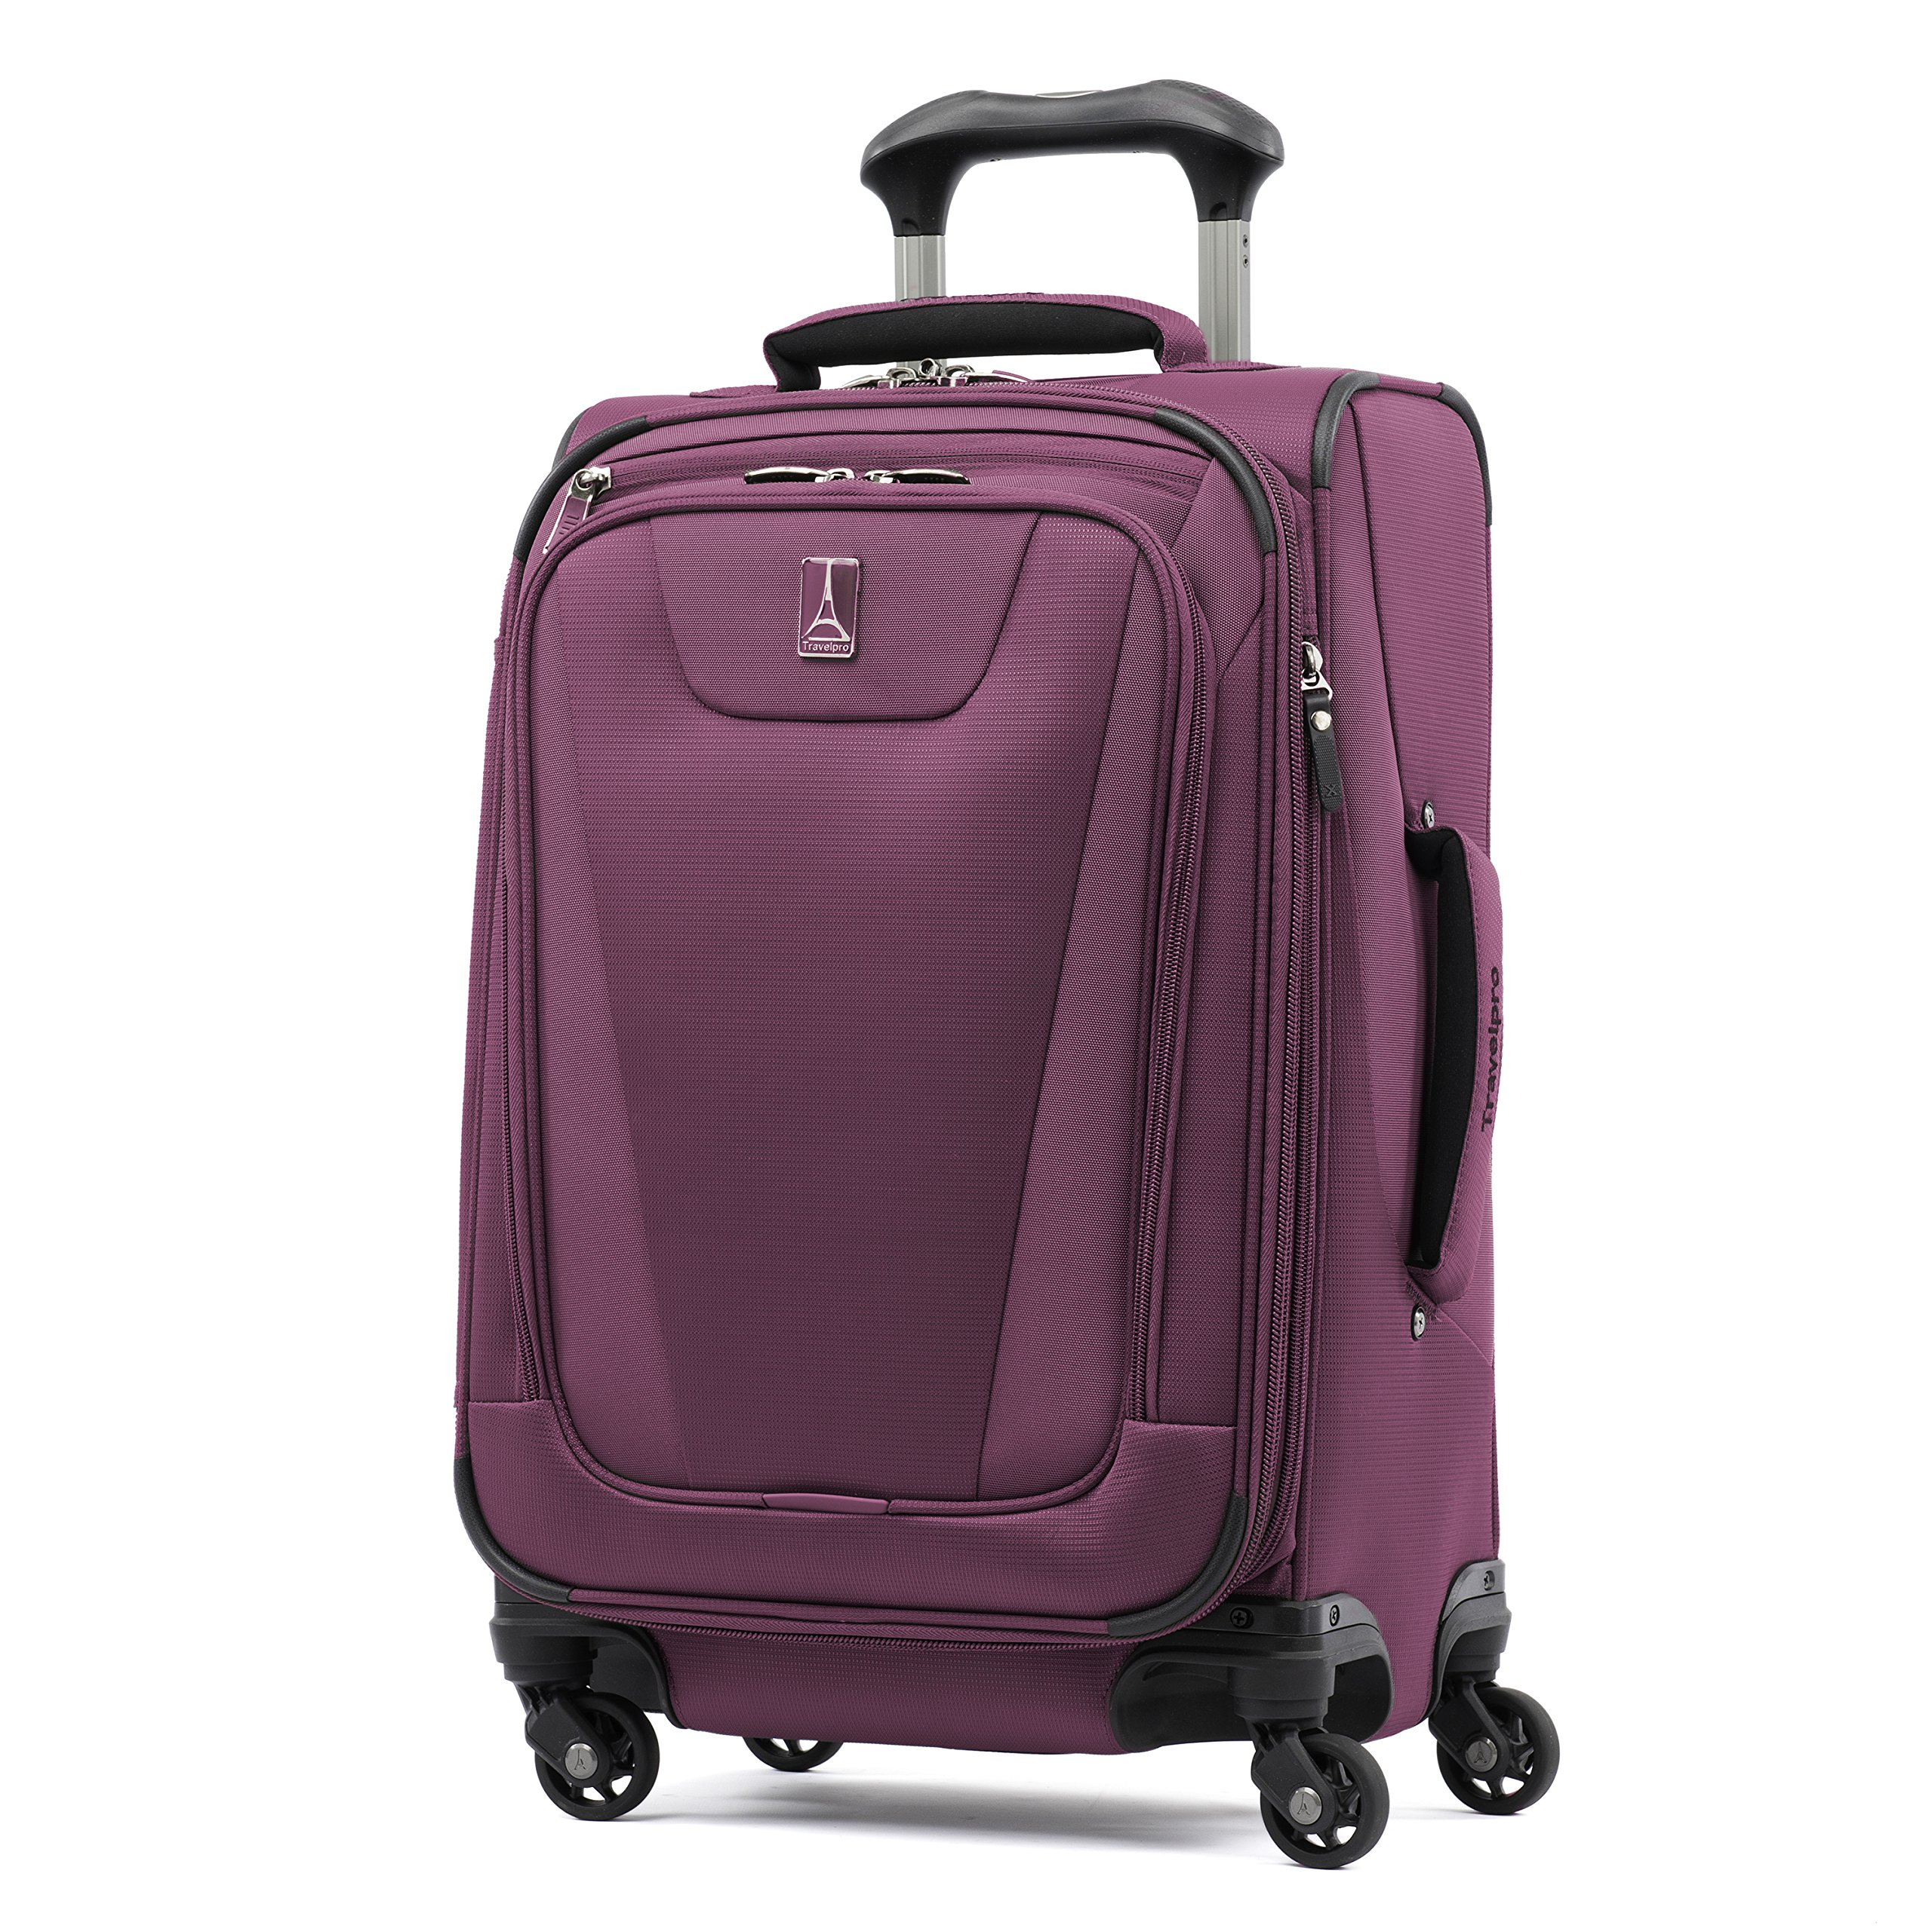 Travelpro Maxlite 4 Expandable 21 Inch Spinner Suitcase, Magenta